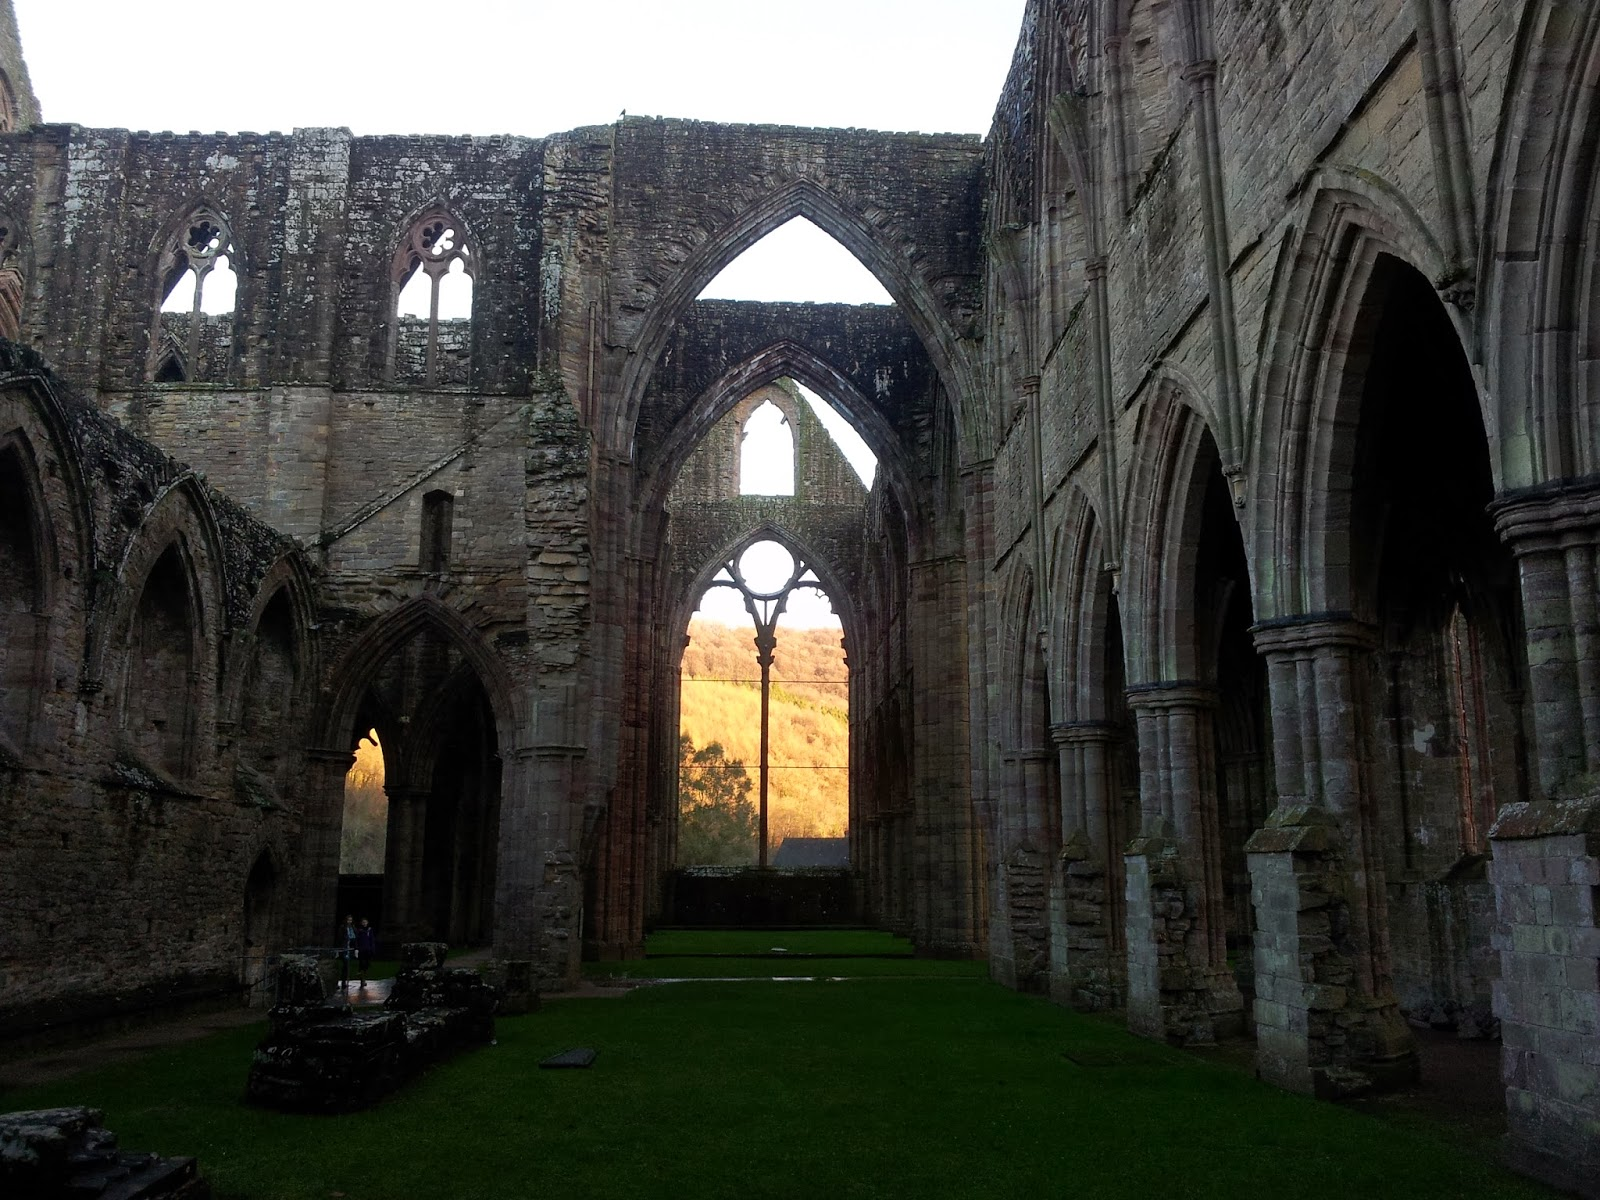 View from inside Tintern Abbey